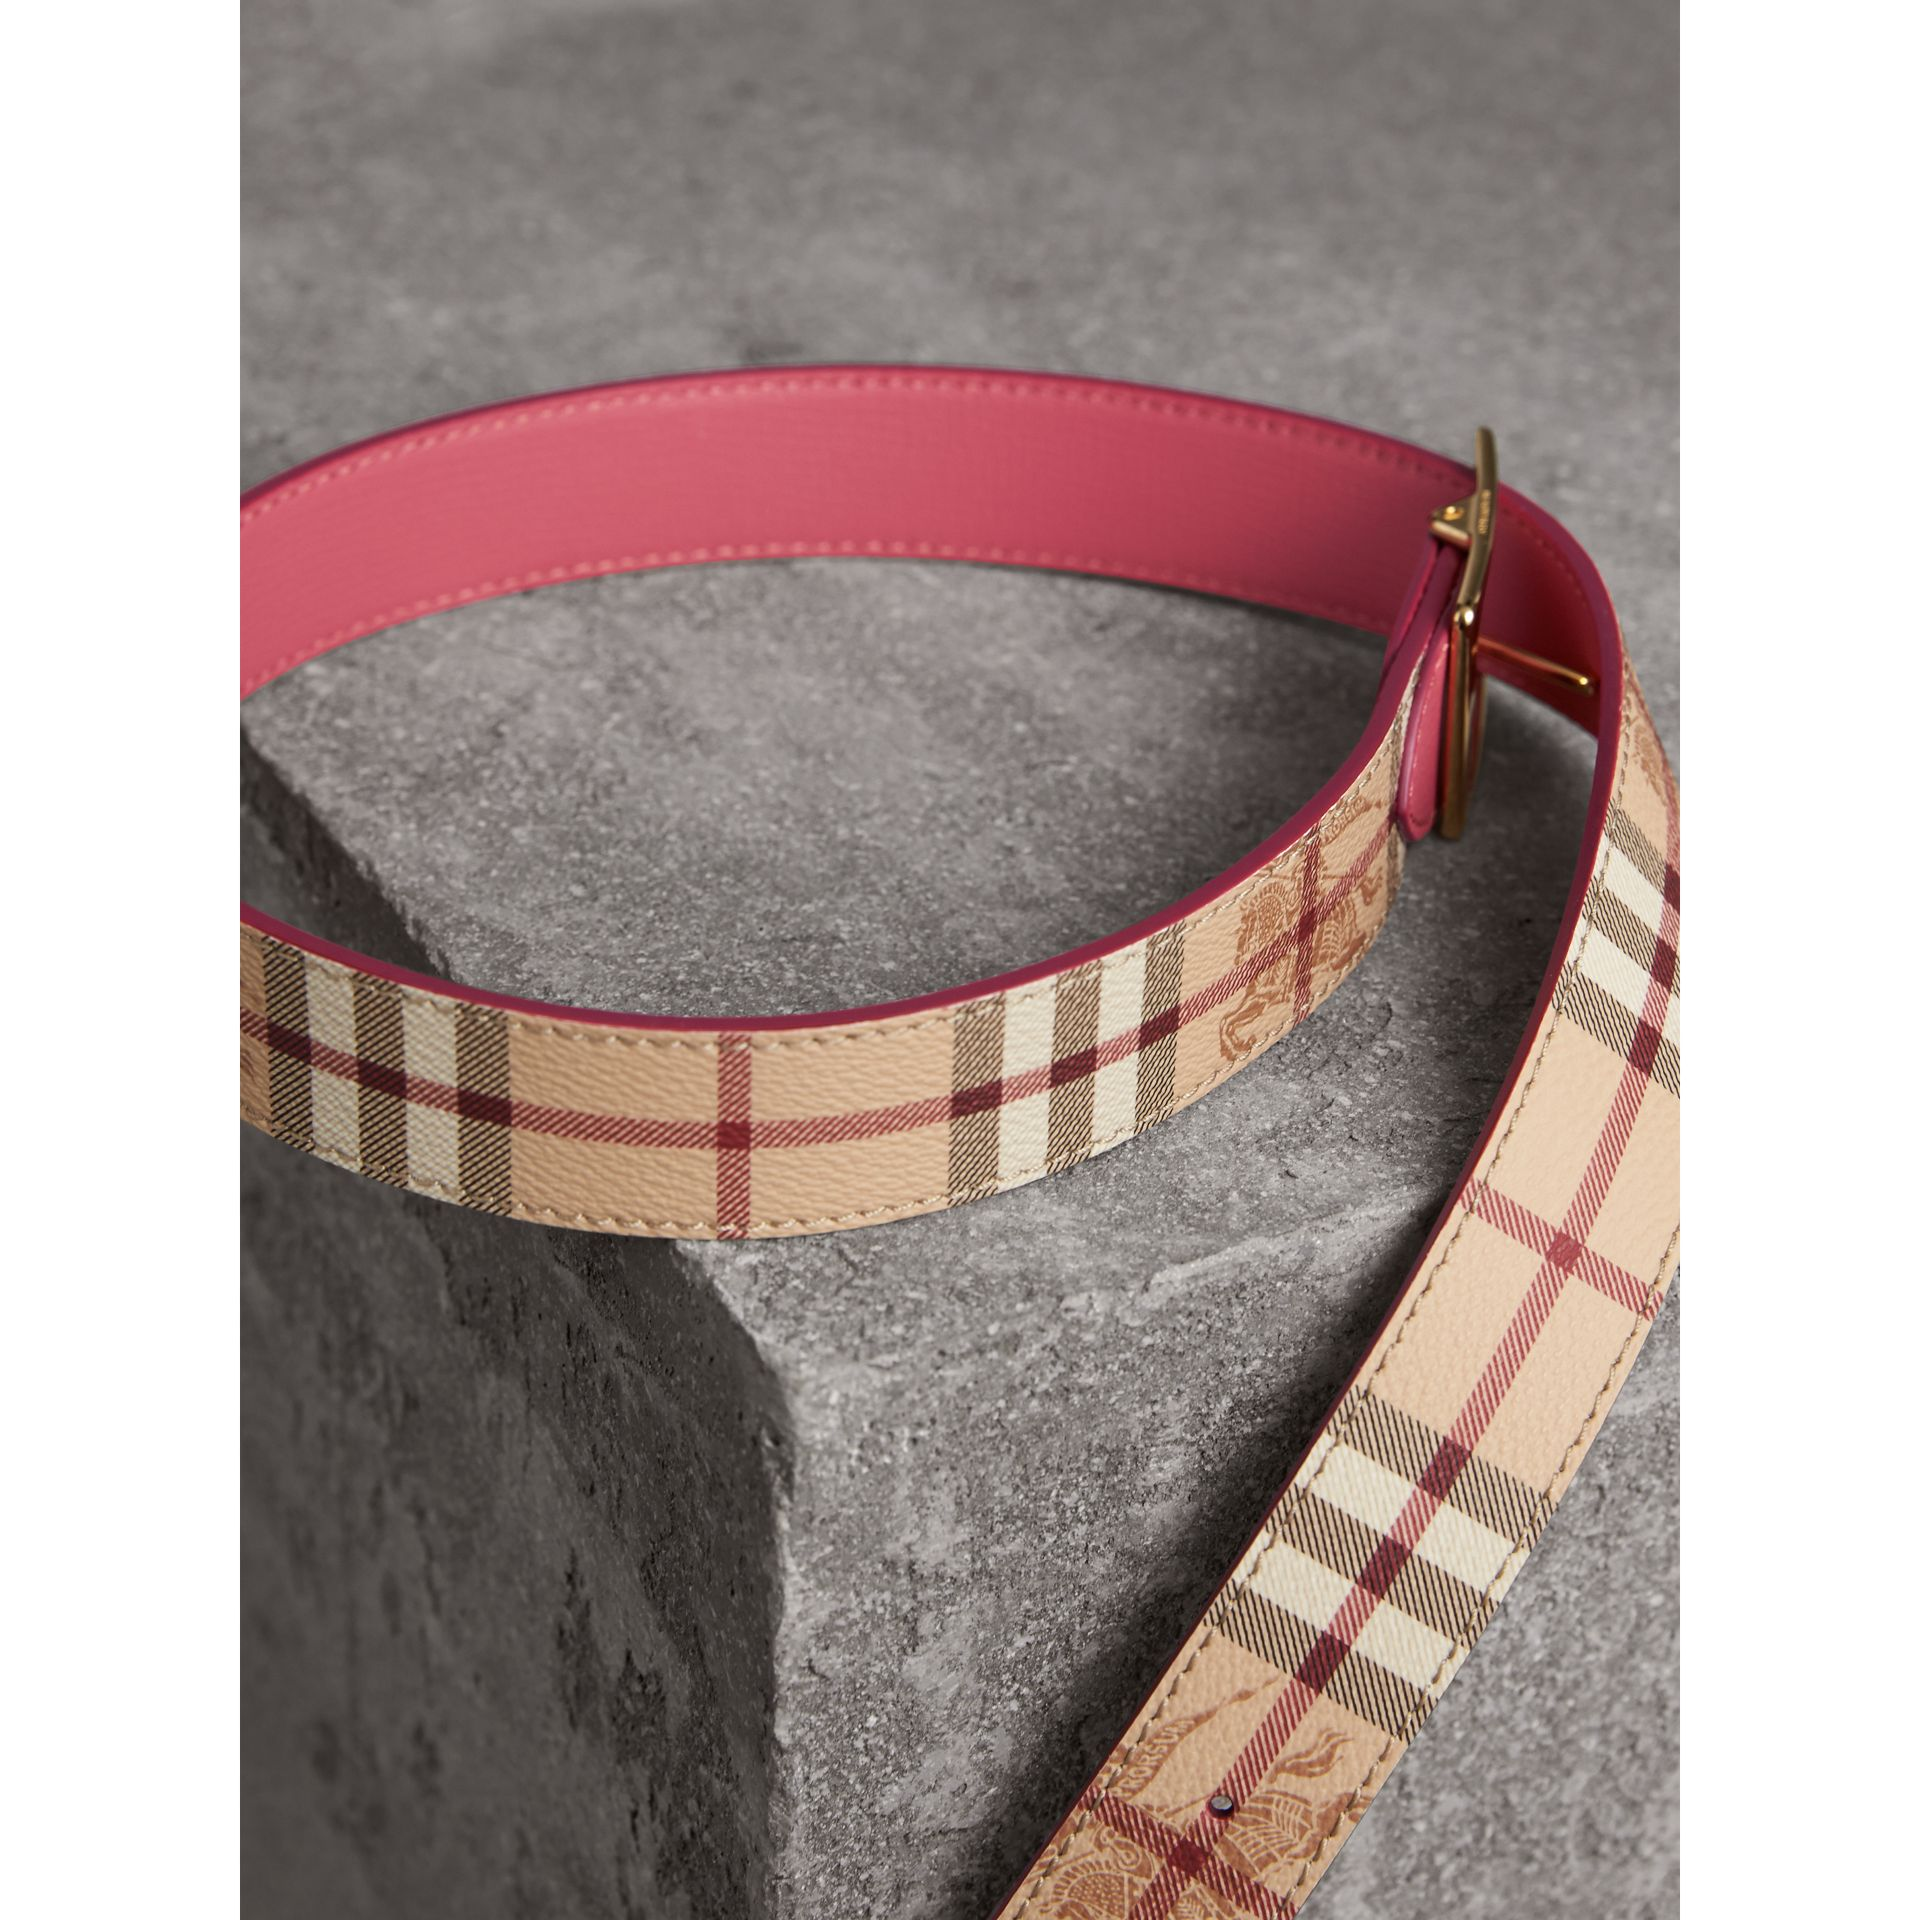 Riveted Reversible Check and Leather Belt in Plum Pink - Women | Burberry - gallery image 4